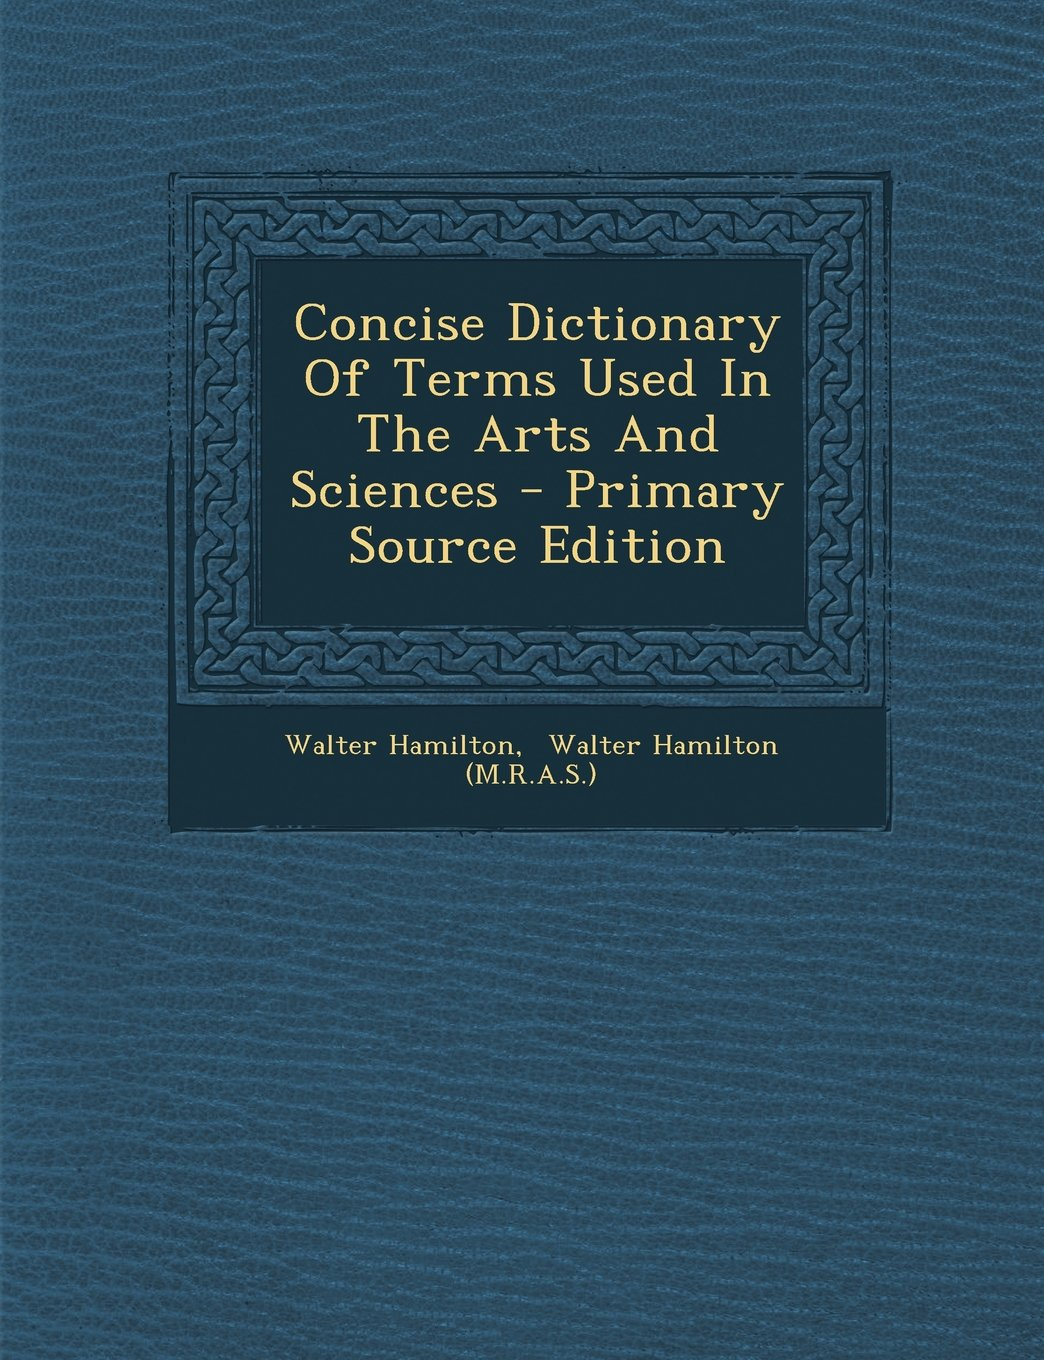 Download Concise Dictionary Of Terms Used In The Arts And Sciences - Primary Source Edition PDF